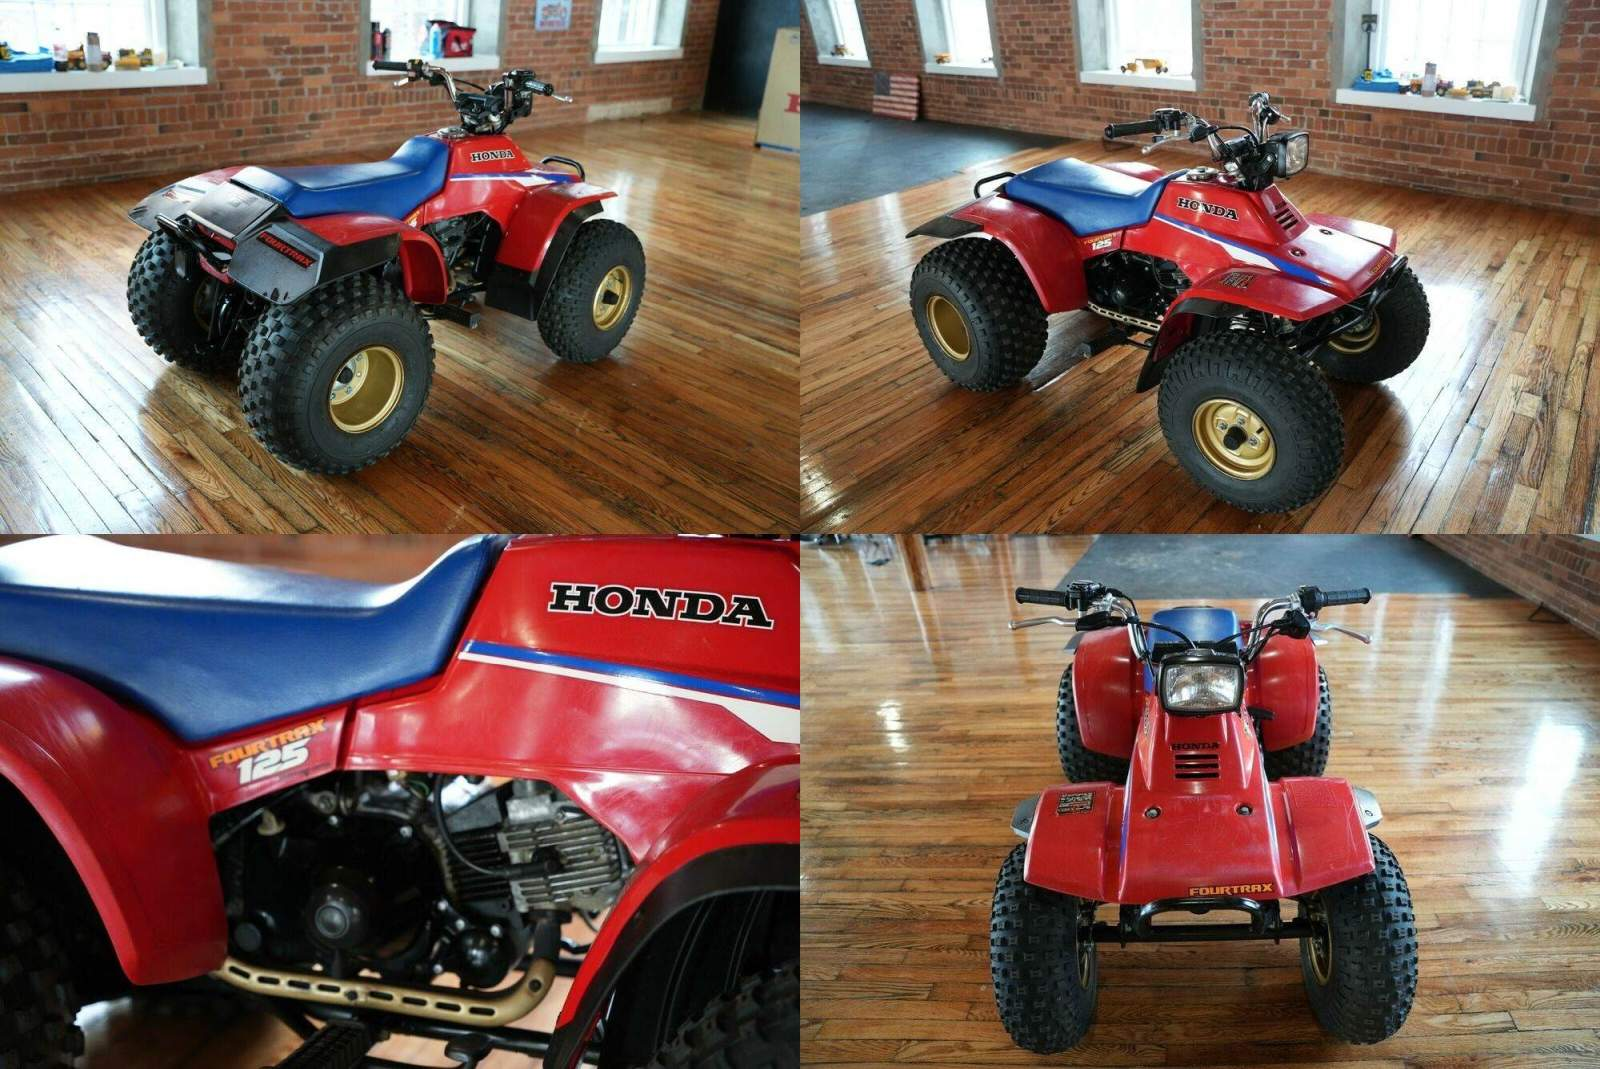 1986 Honda Other  used for sale craigslist